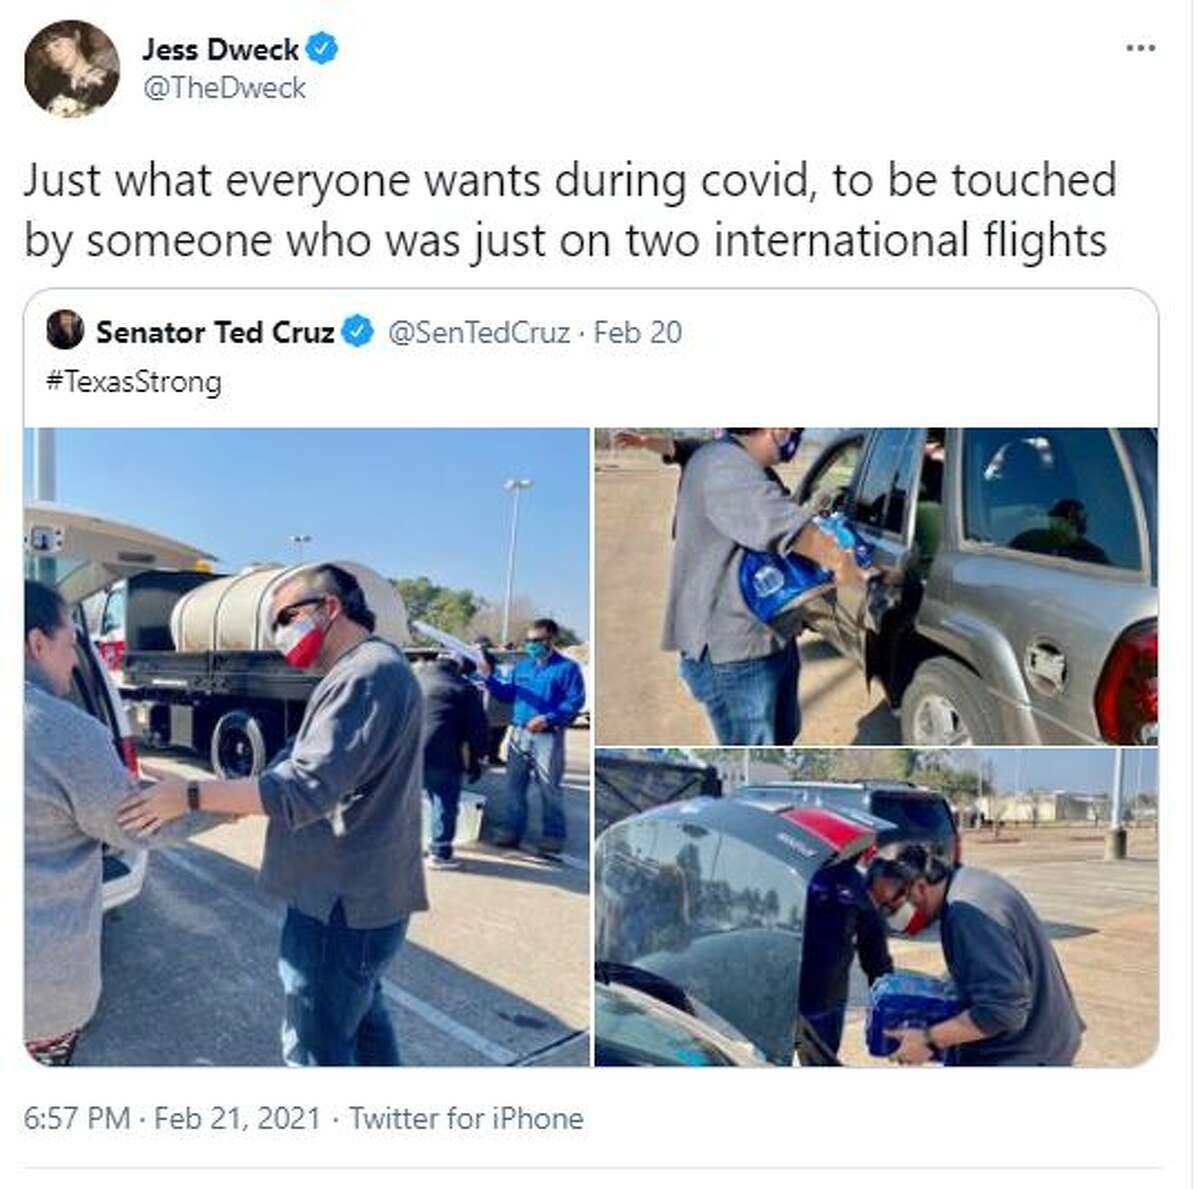 """@TheDweck said, """"Just what everyone wants during covid, to be touched by someone who was just on two international flights."""""""